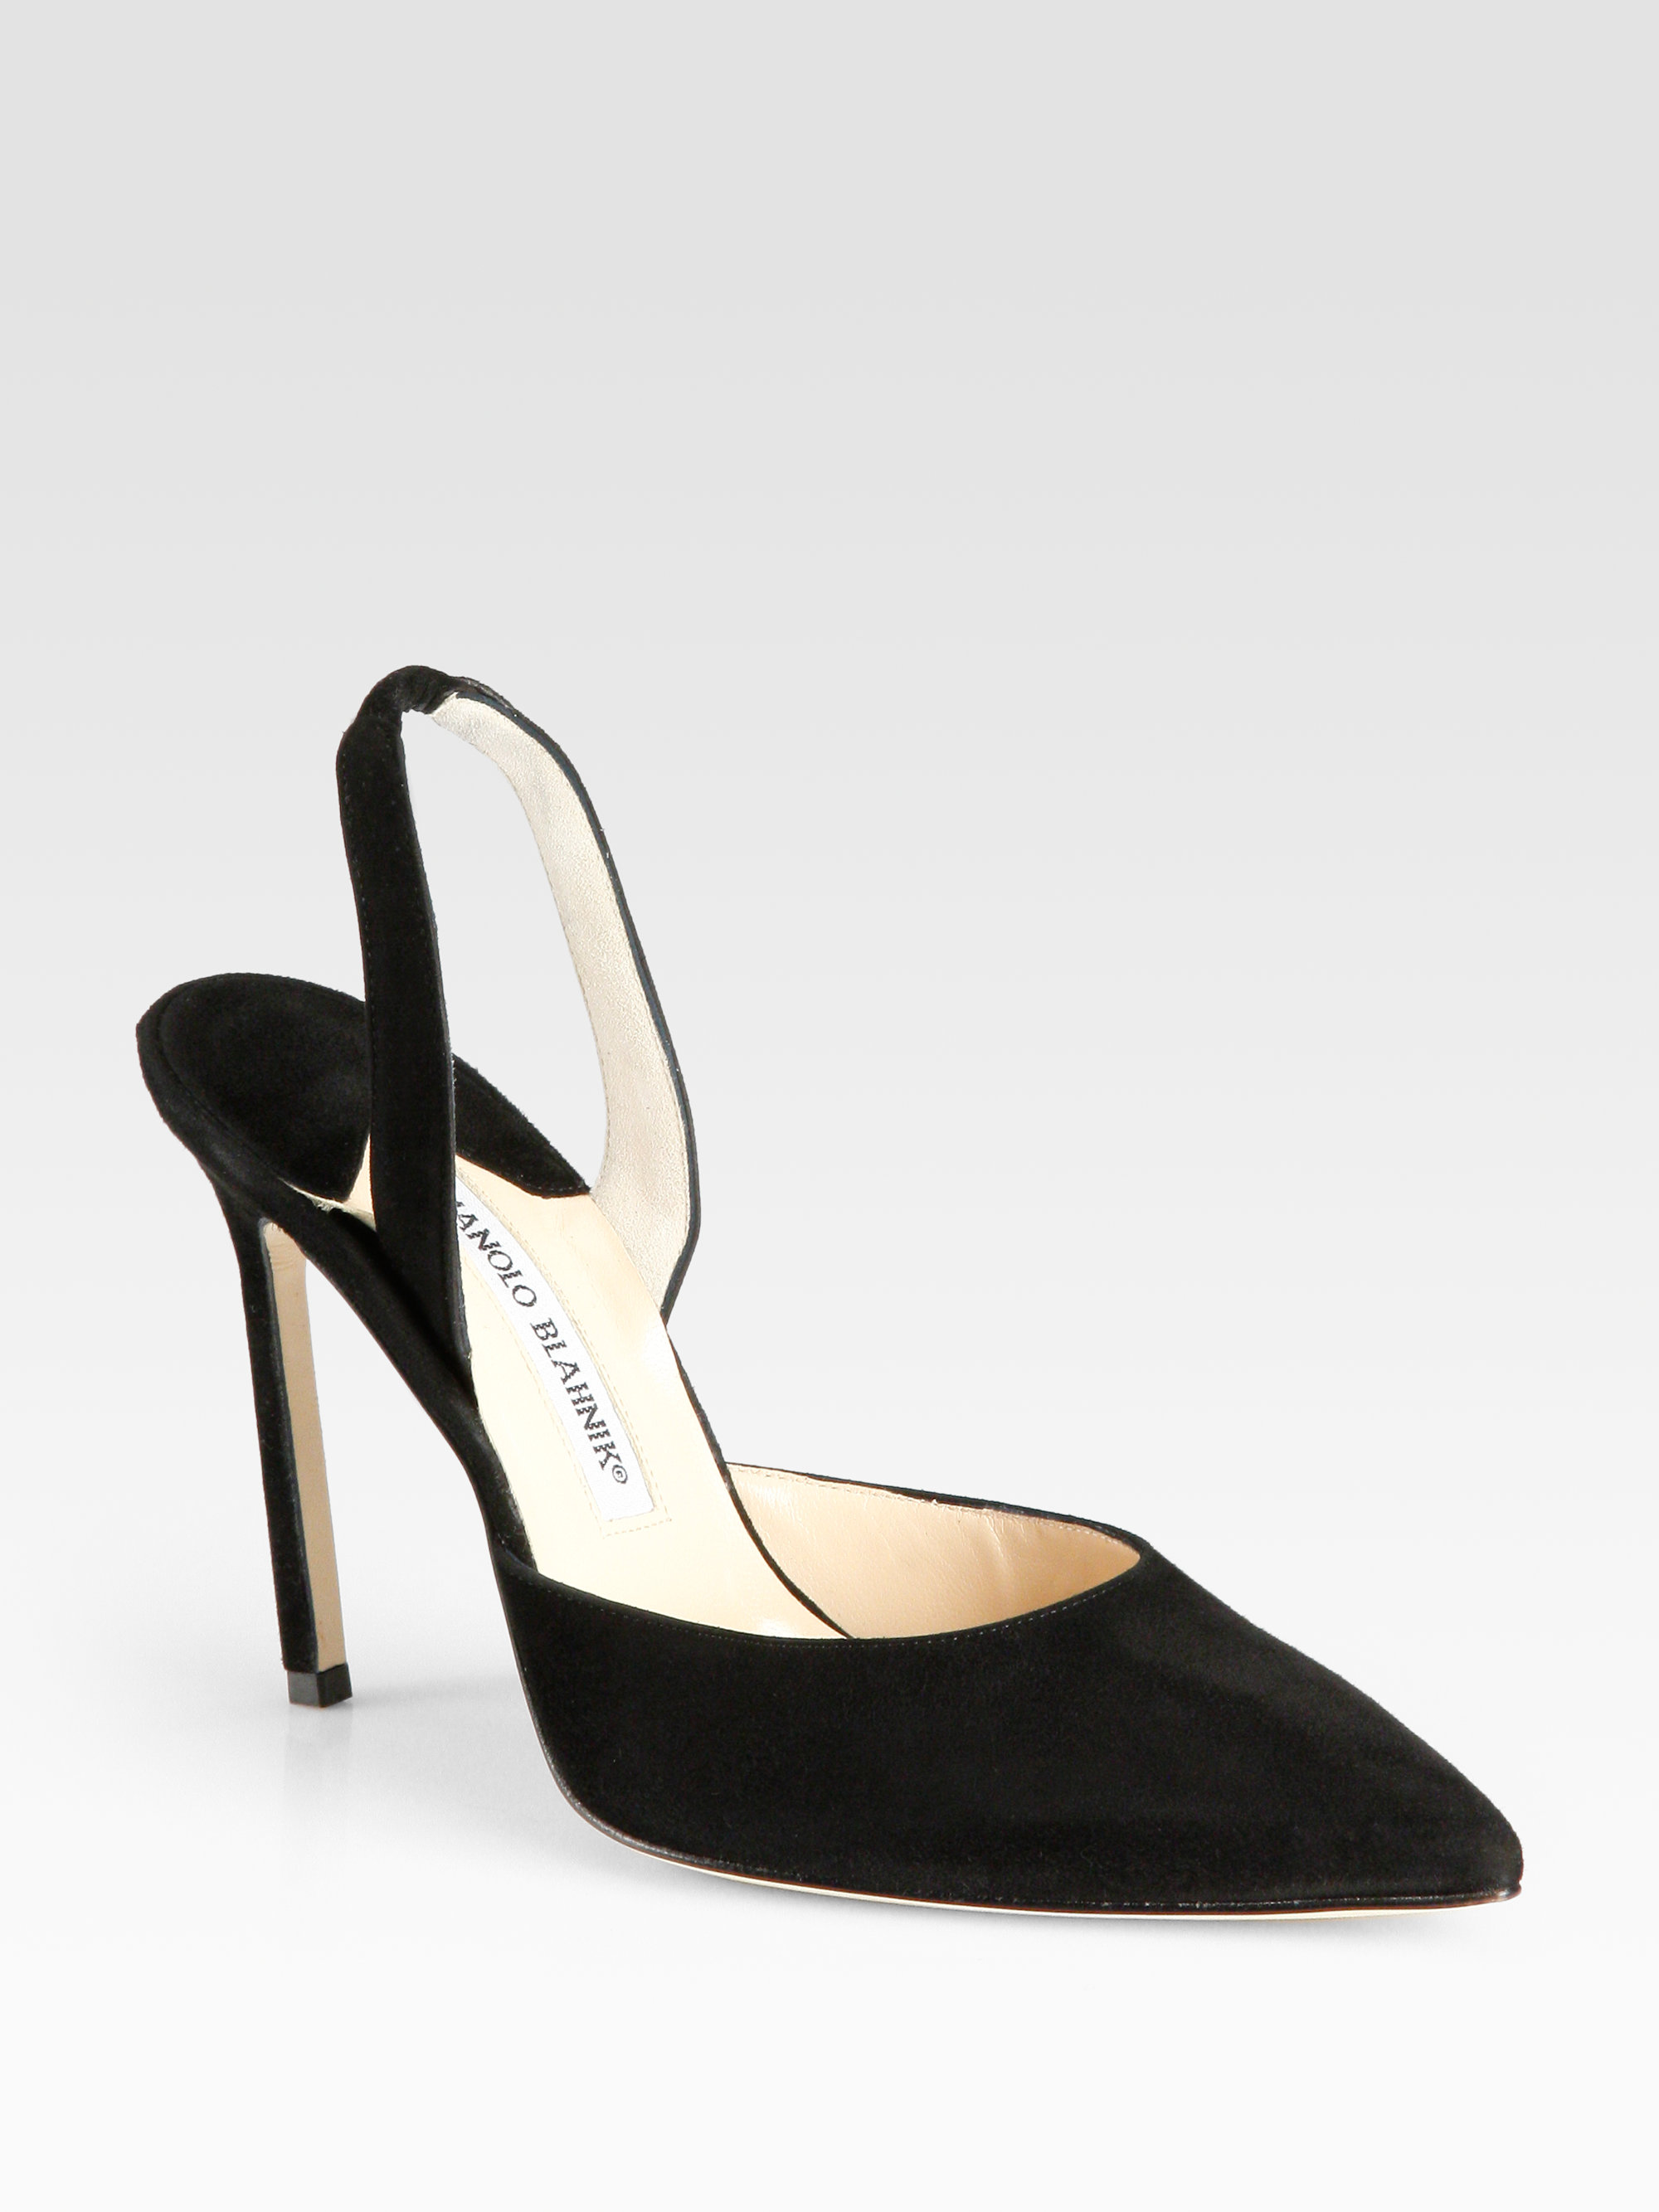 f40caaef804 Lyst - Manolo Blahnik Carolyne Suede Slingback Point Toe Pumps in Black